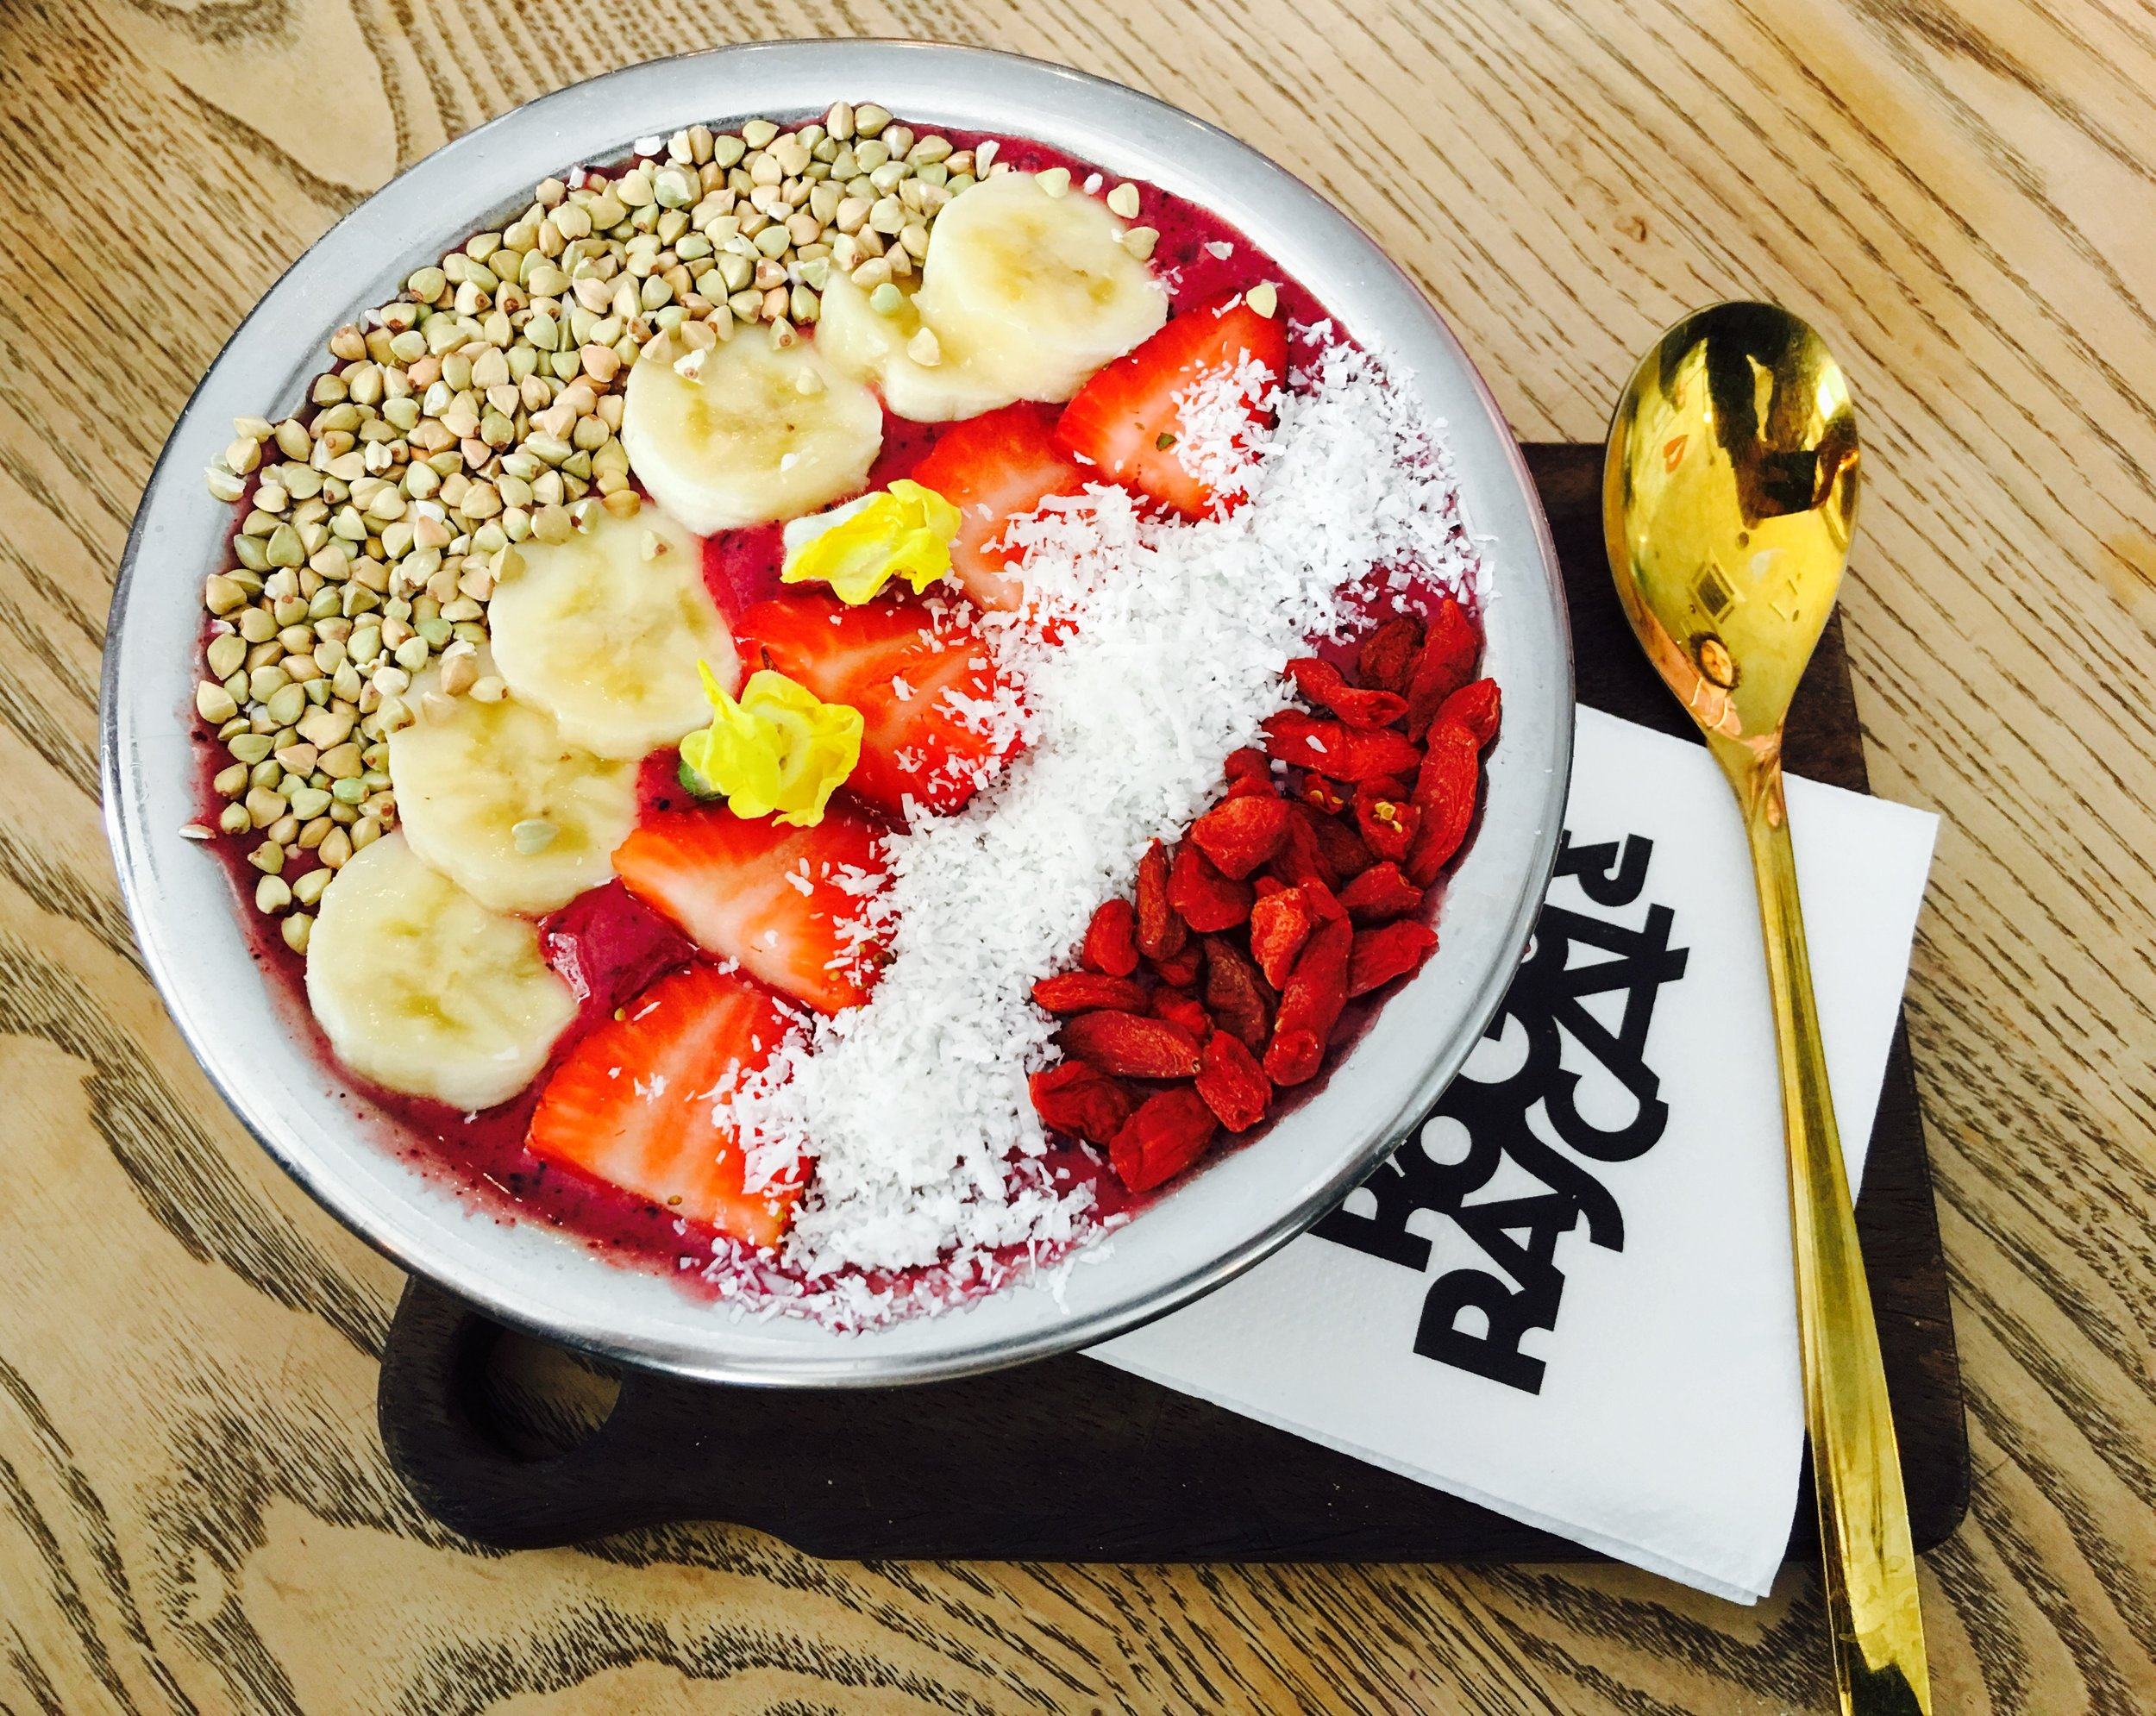 The Acai Bowl at the Rogue and Rascal, Pt Lincoln.